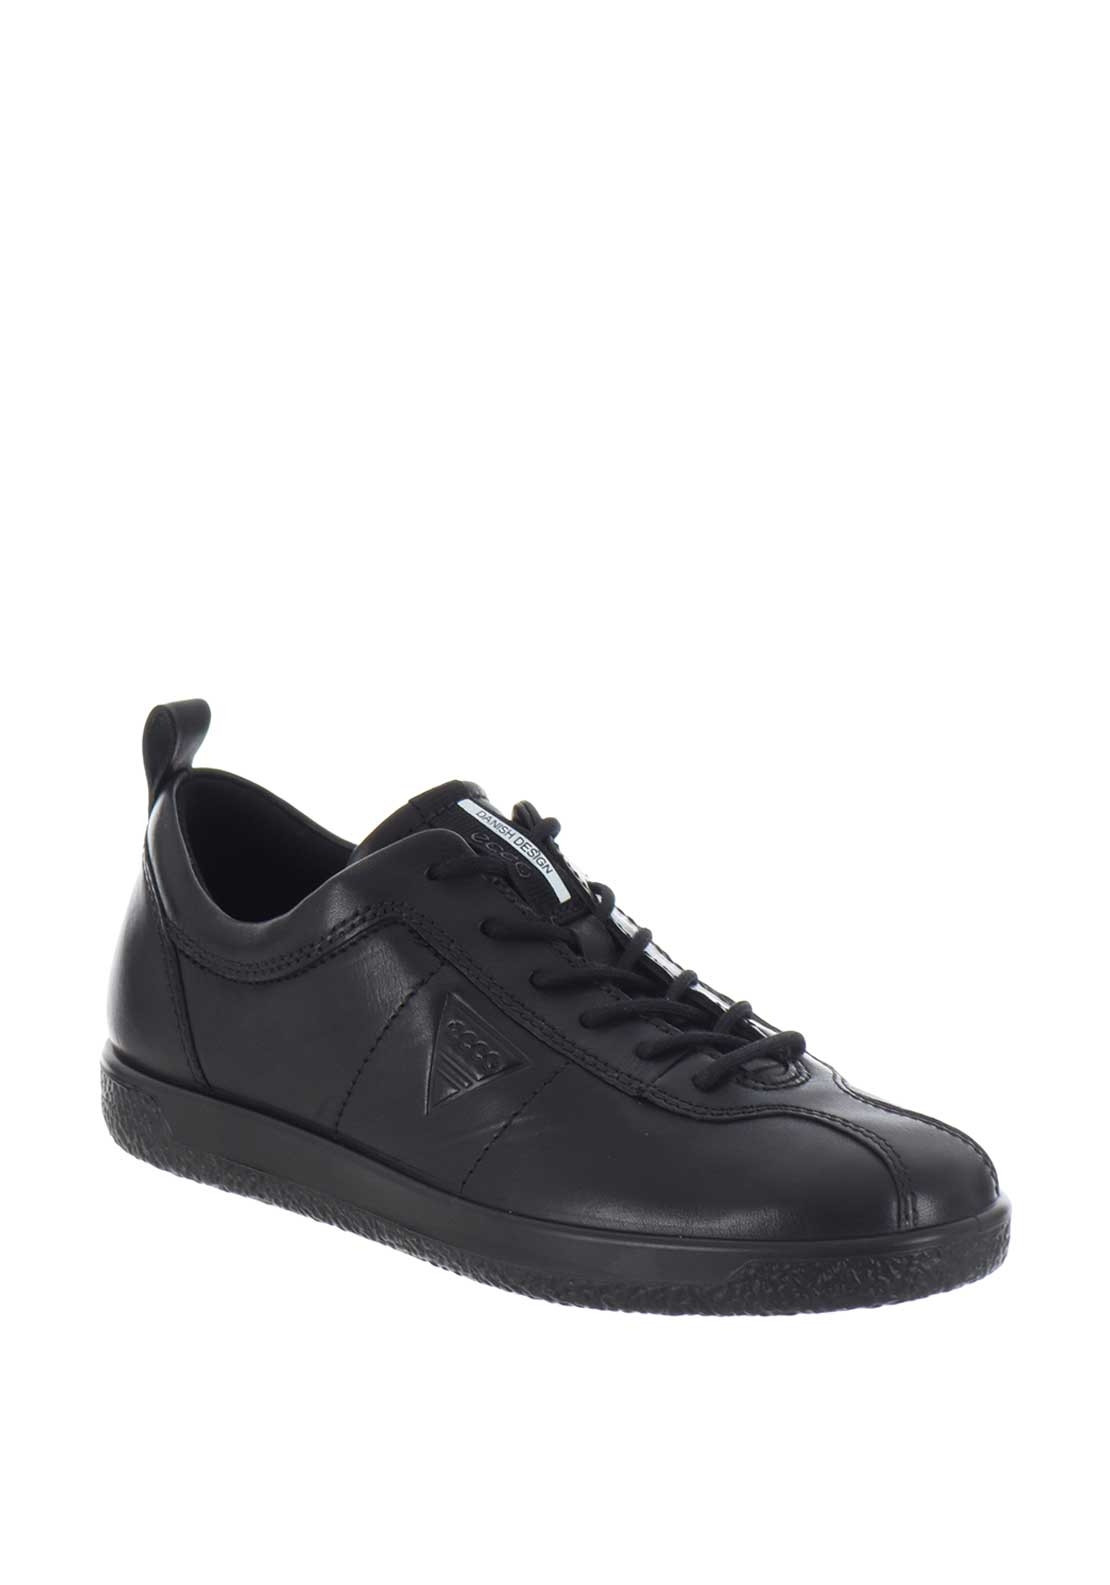 9349ab1617 Ecco Womens Leather Soft 1 Comfort Shoes, Black